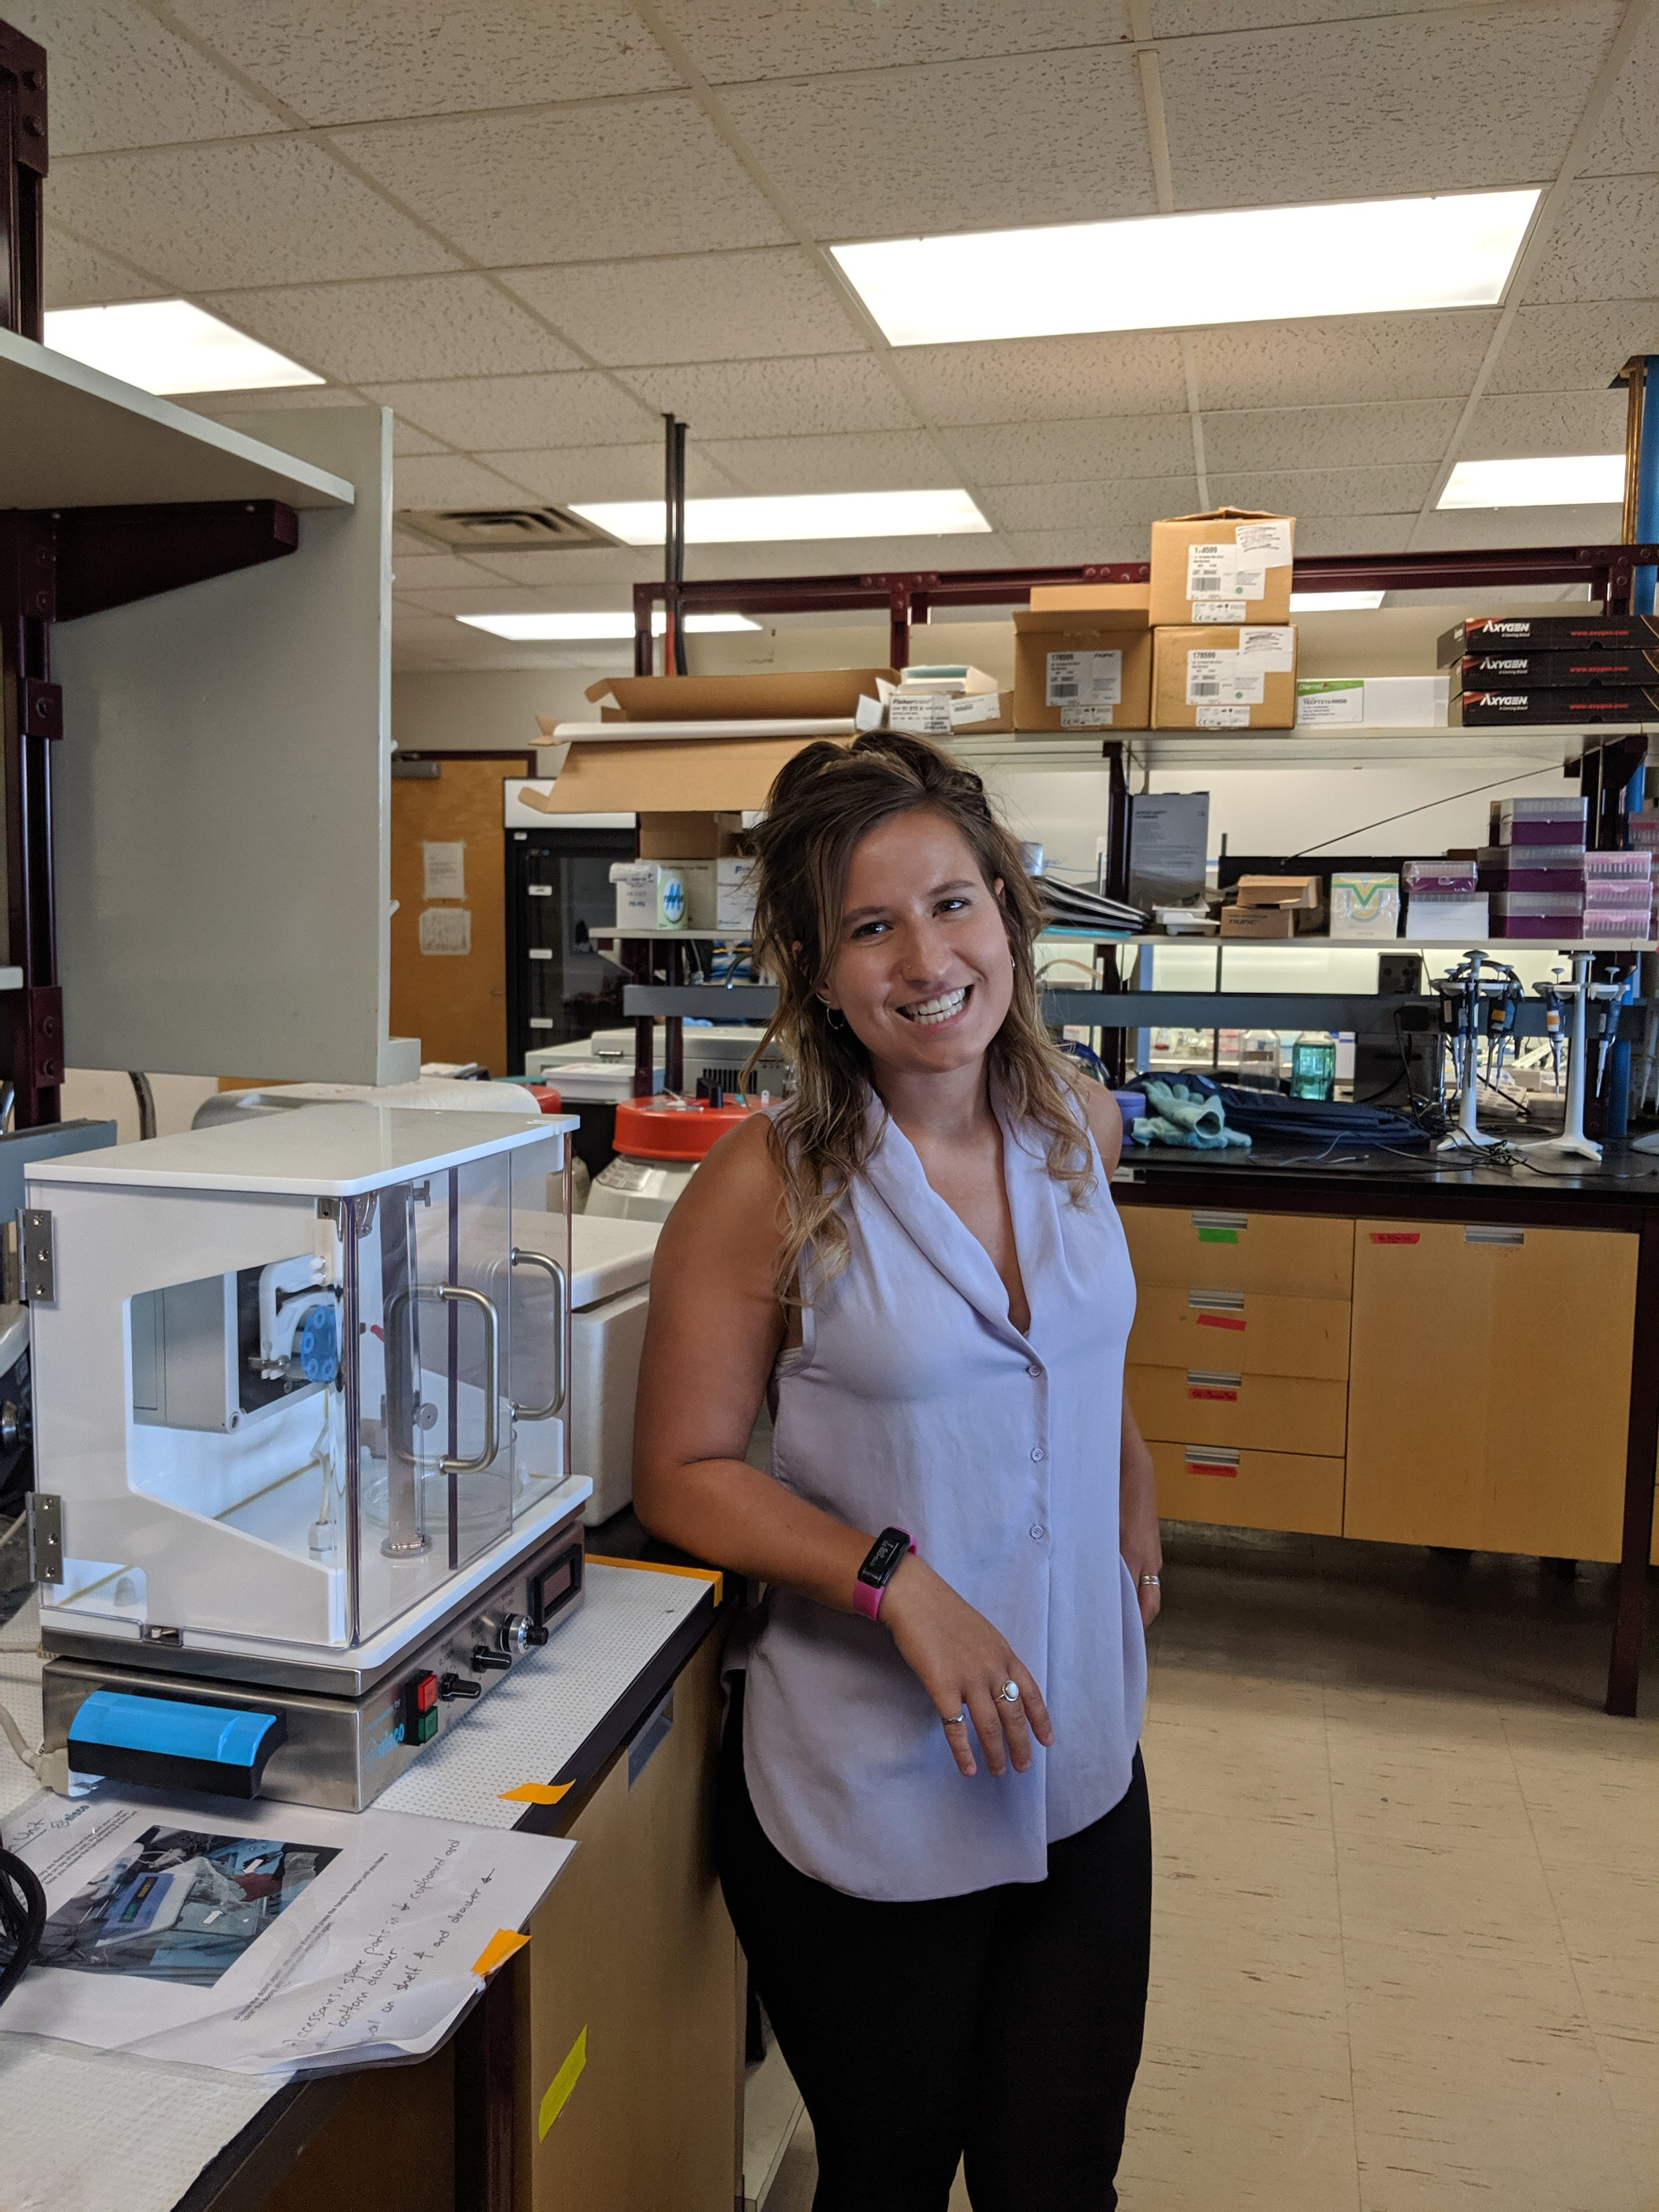 Breanna poses next to a cell encapsulation machine in the lab